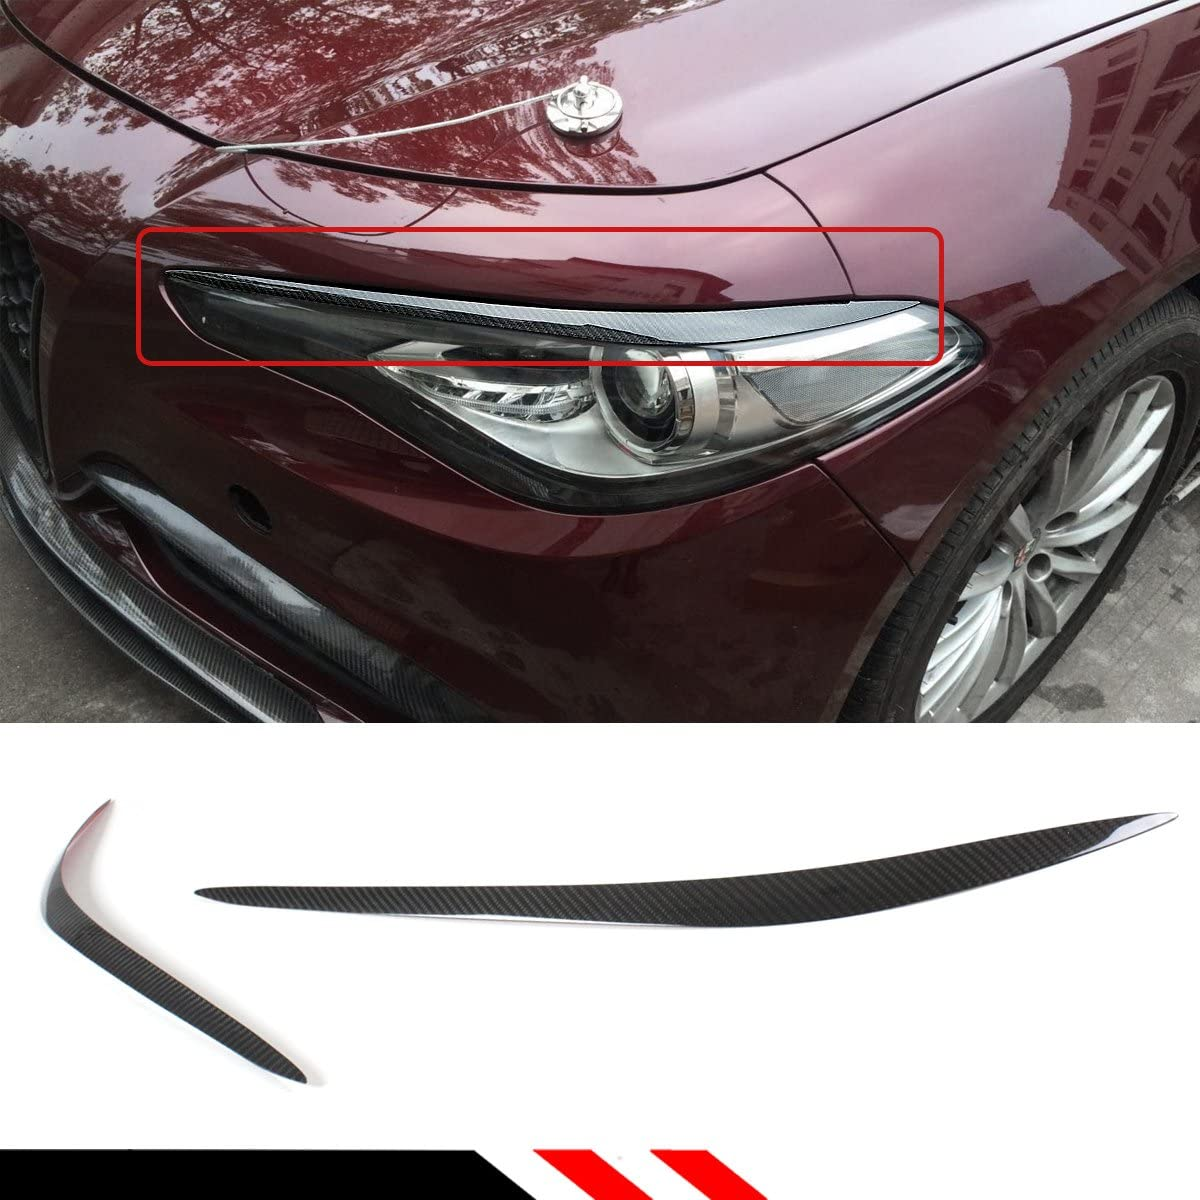 Cuztom Tuning Fits for 2016-2018 Alfa Romeo Giulia Real Carbon Fiber Headlight Eyelid Cover Eyebrow